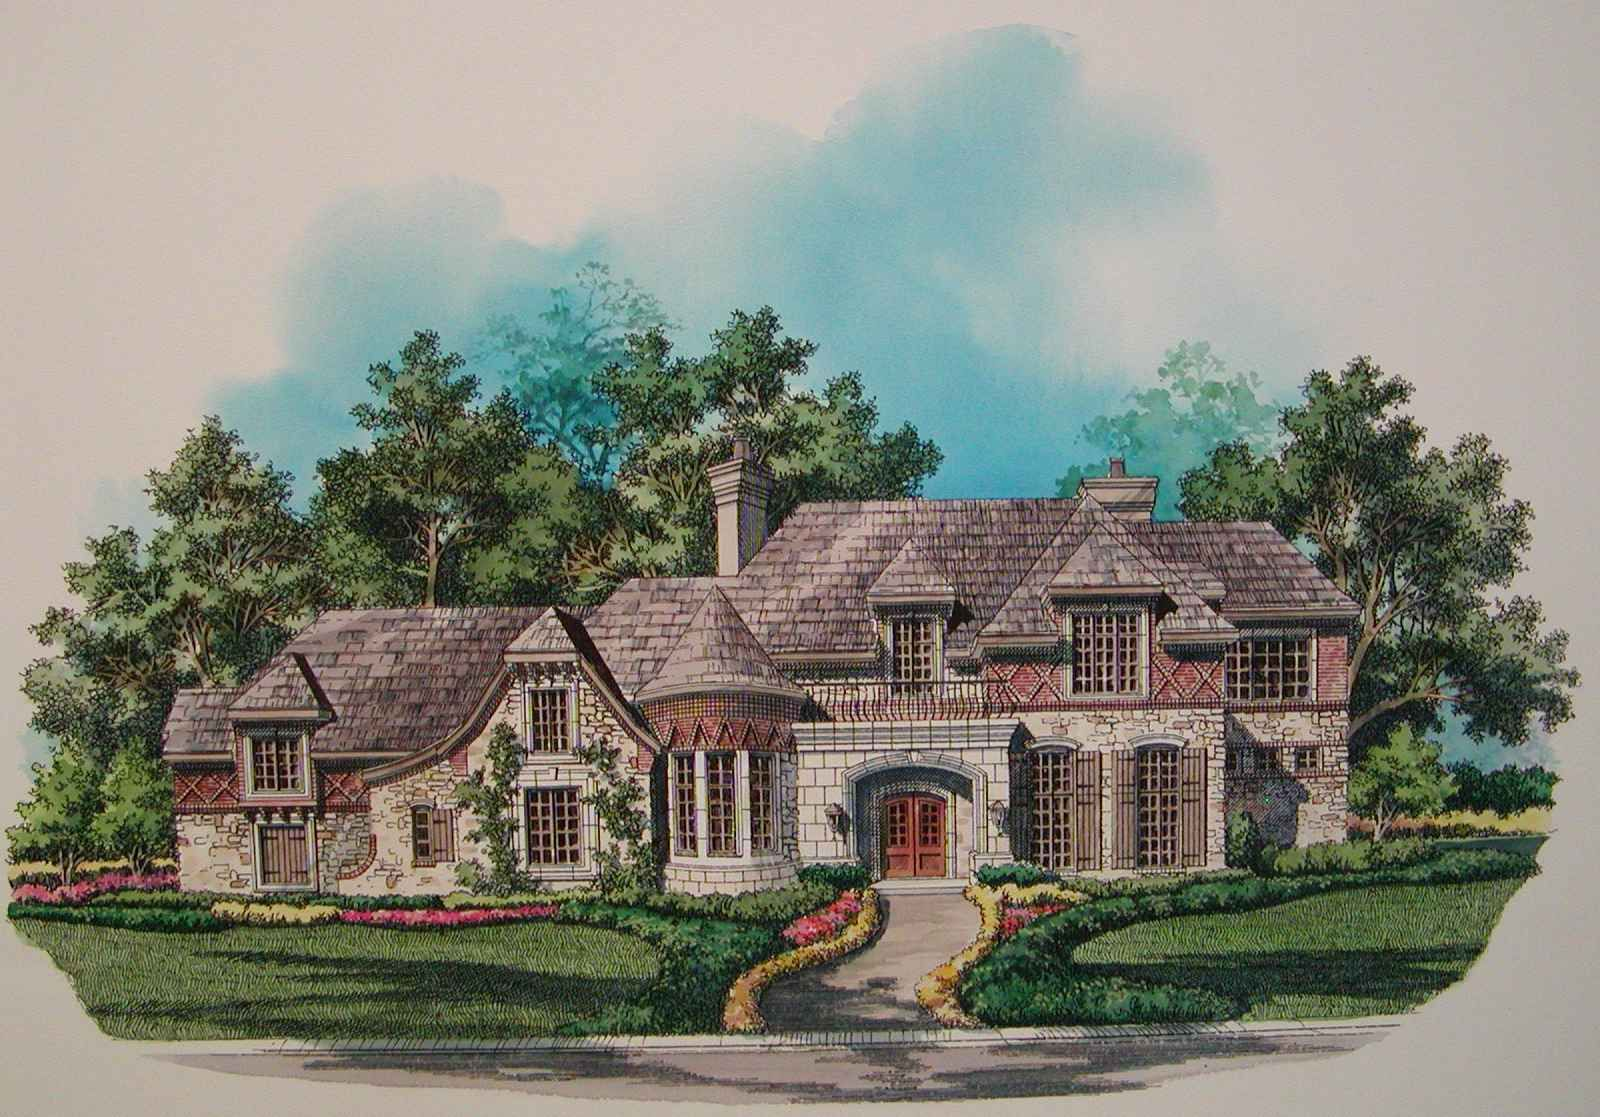 French normandy design 6000 sq ft dallas suburbs for 6000 sq ft home